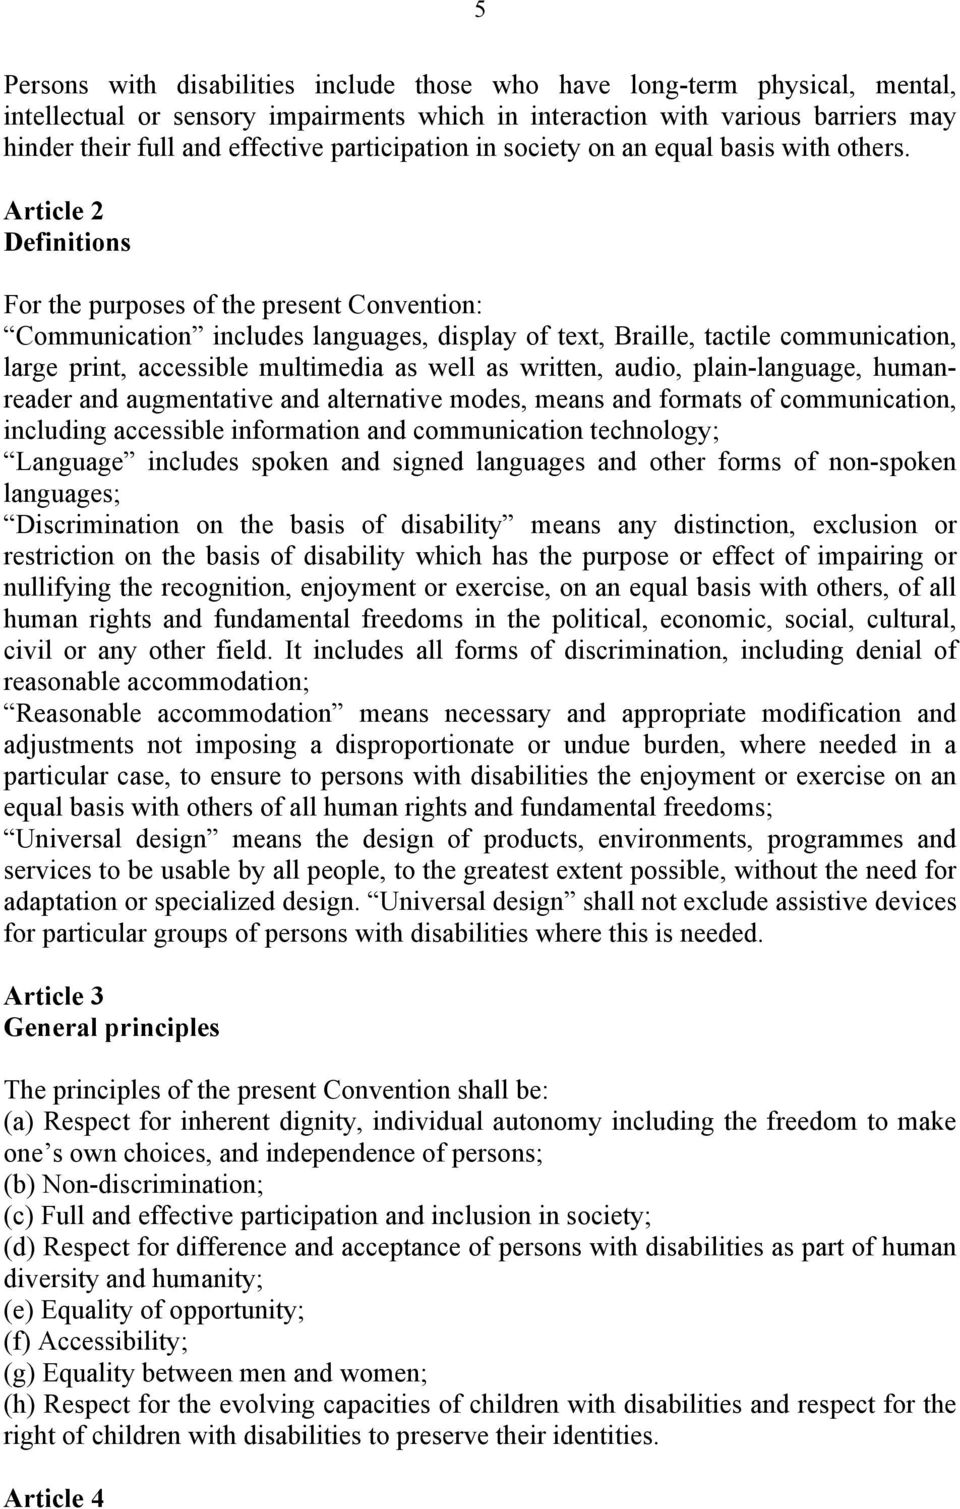 Article 2 Definitions For the purposes of the present Convention: Communication includes languages, display of text, Braille, tactile communication, large print, accessible multimedia as well as